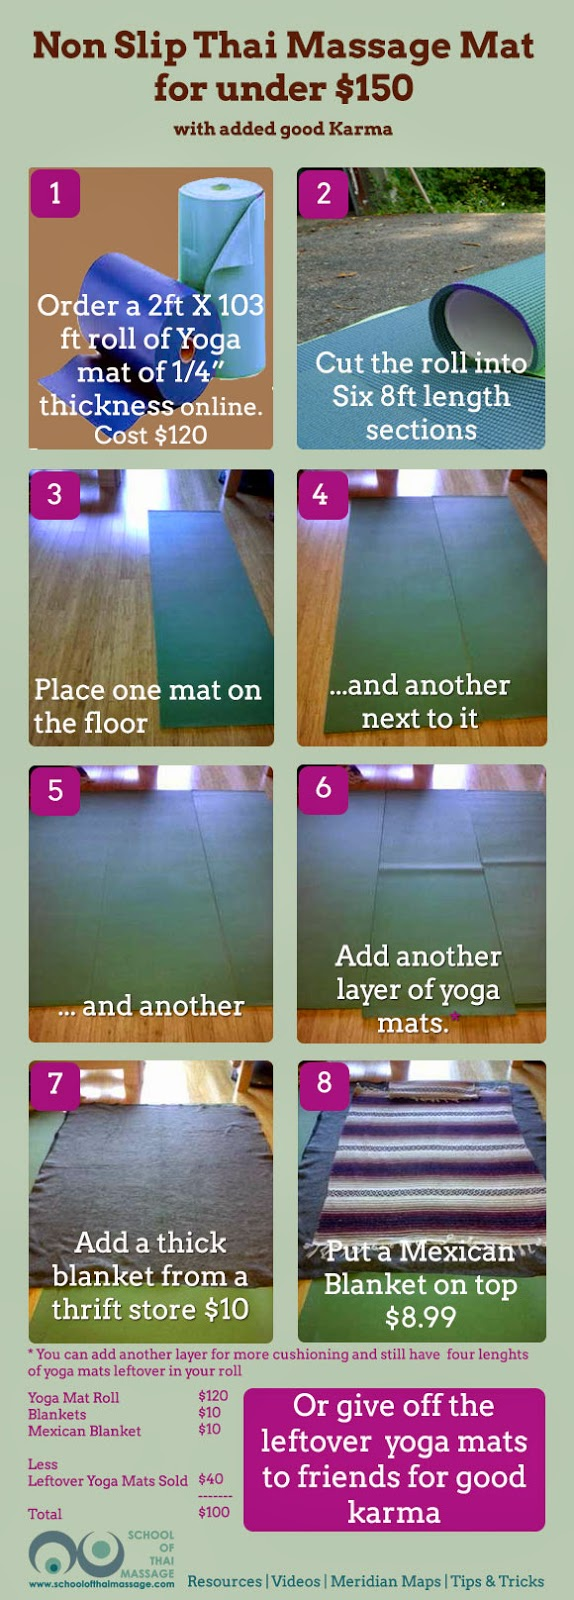 Infographic: How to make your own non slip Thai Massage Mat